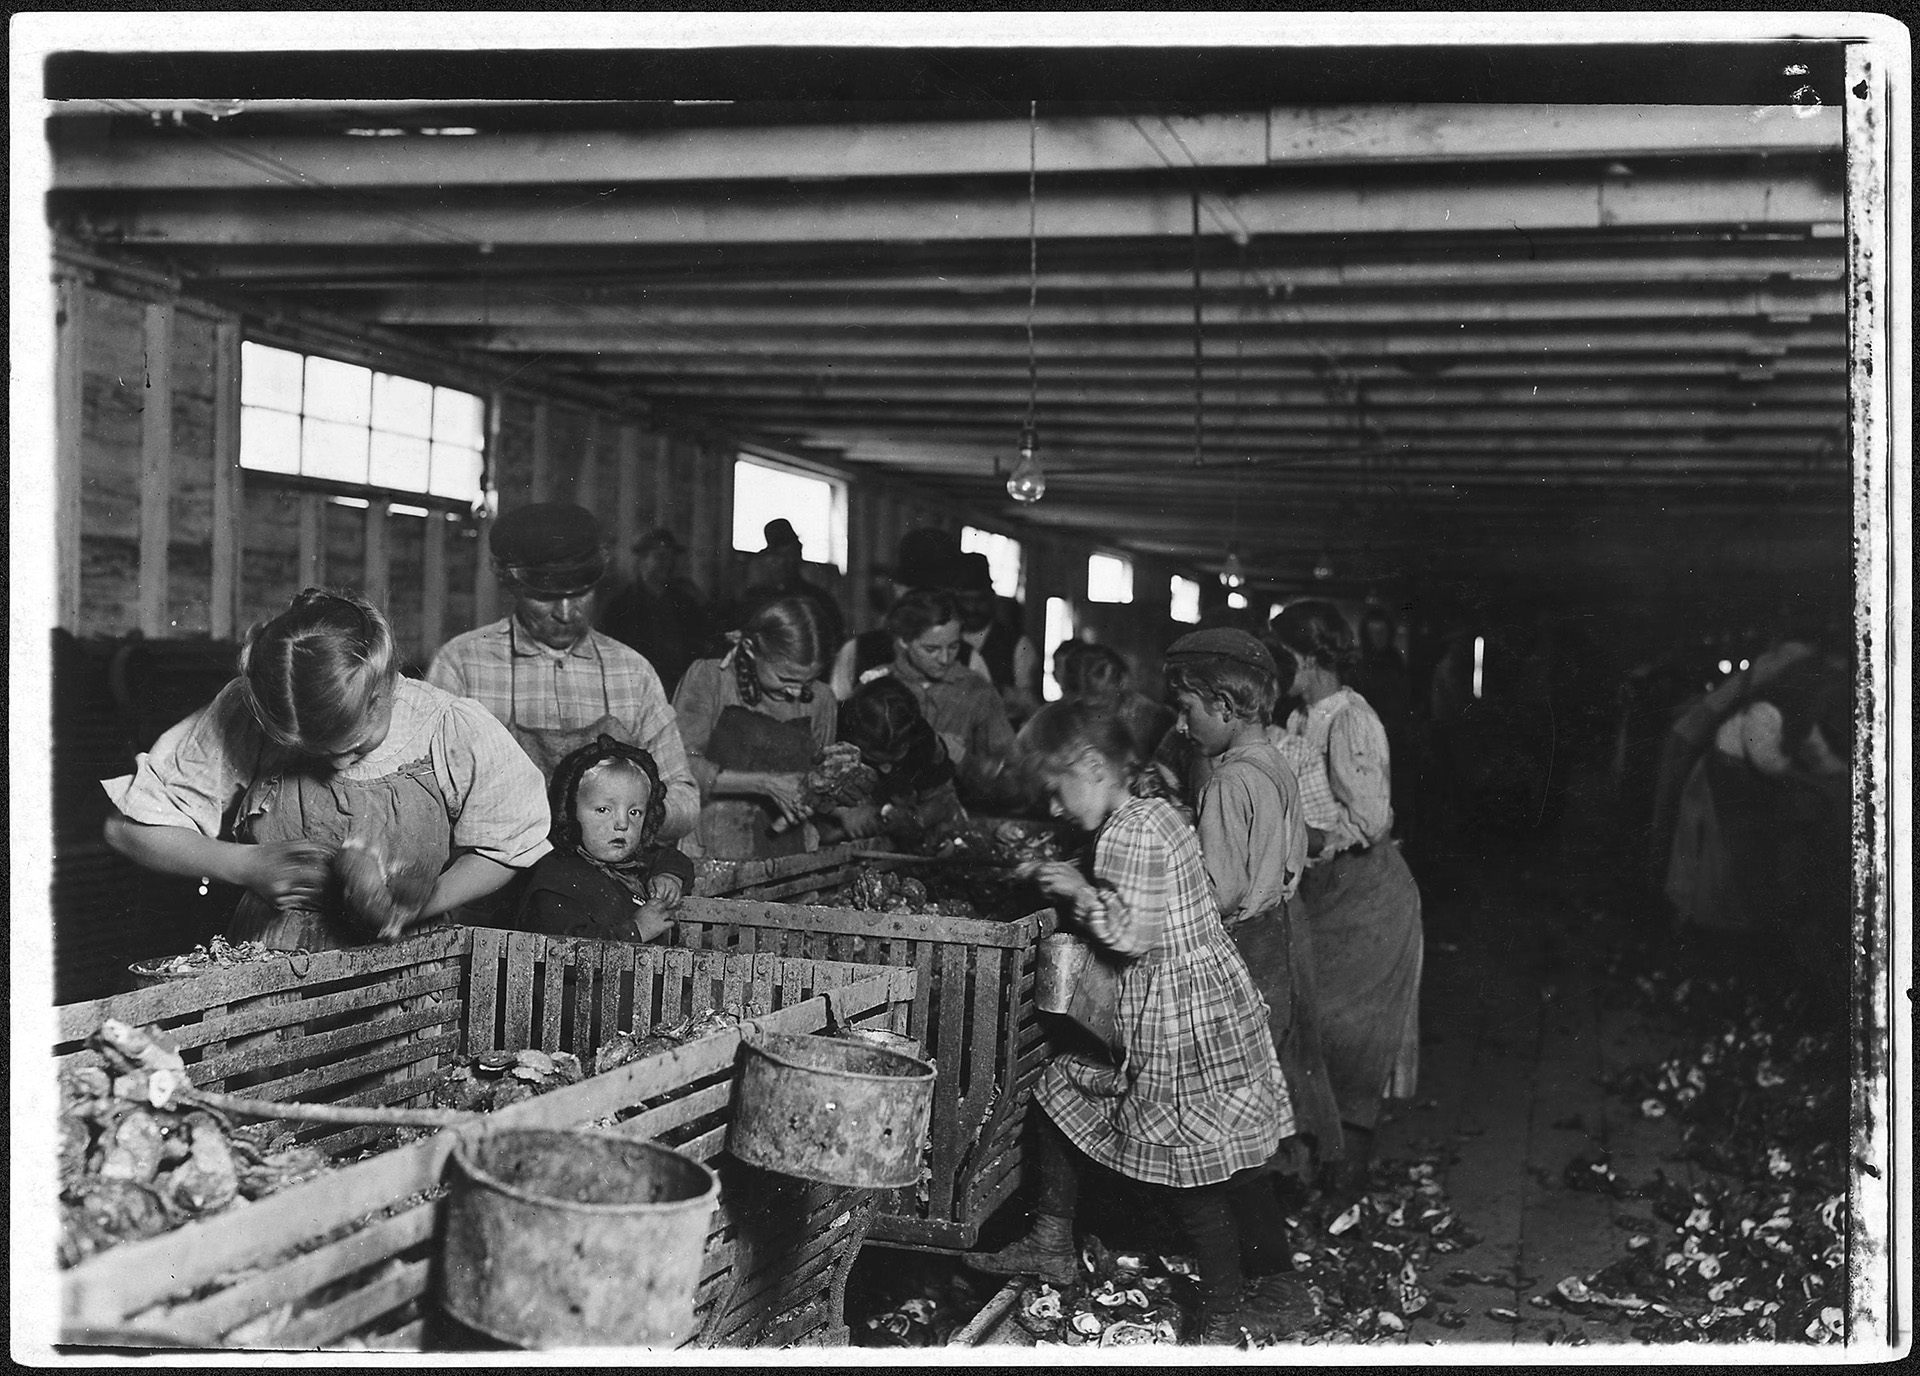 (Credit: Lewis Hine/The U.S. National Archives)